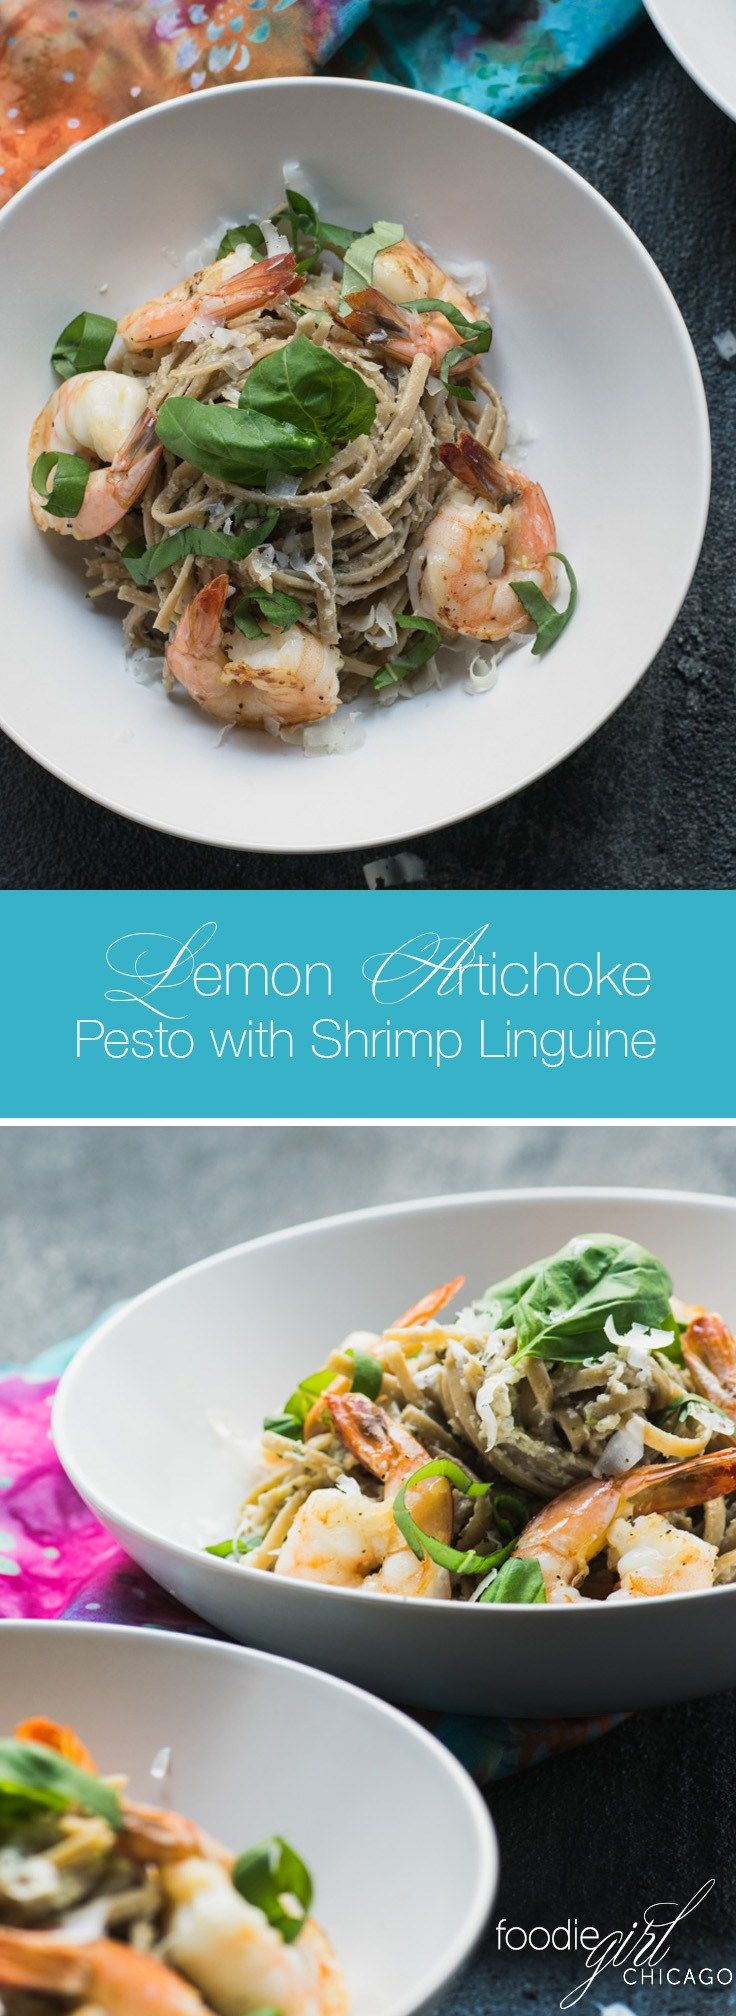 There are so many possibilities when it comes to Lemon Artichoke Pesto – I just love it with this garlic shrimp and linguine!